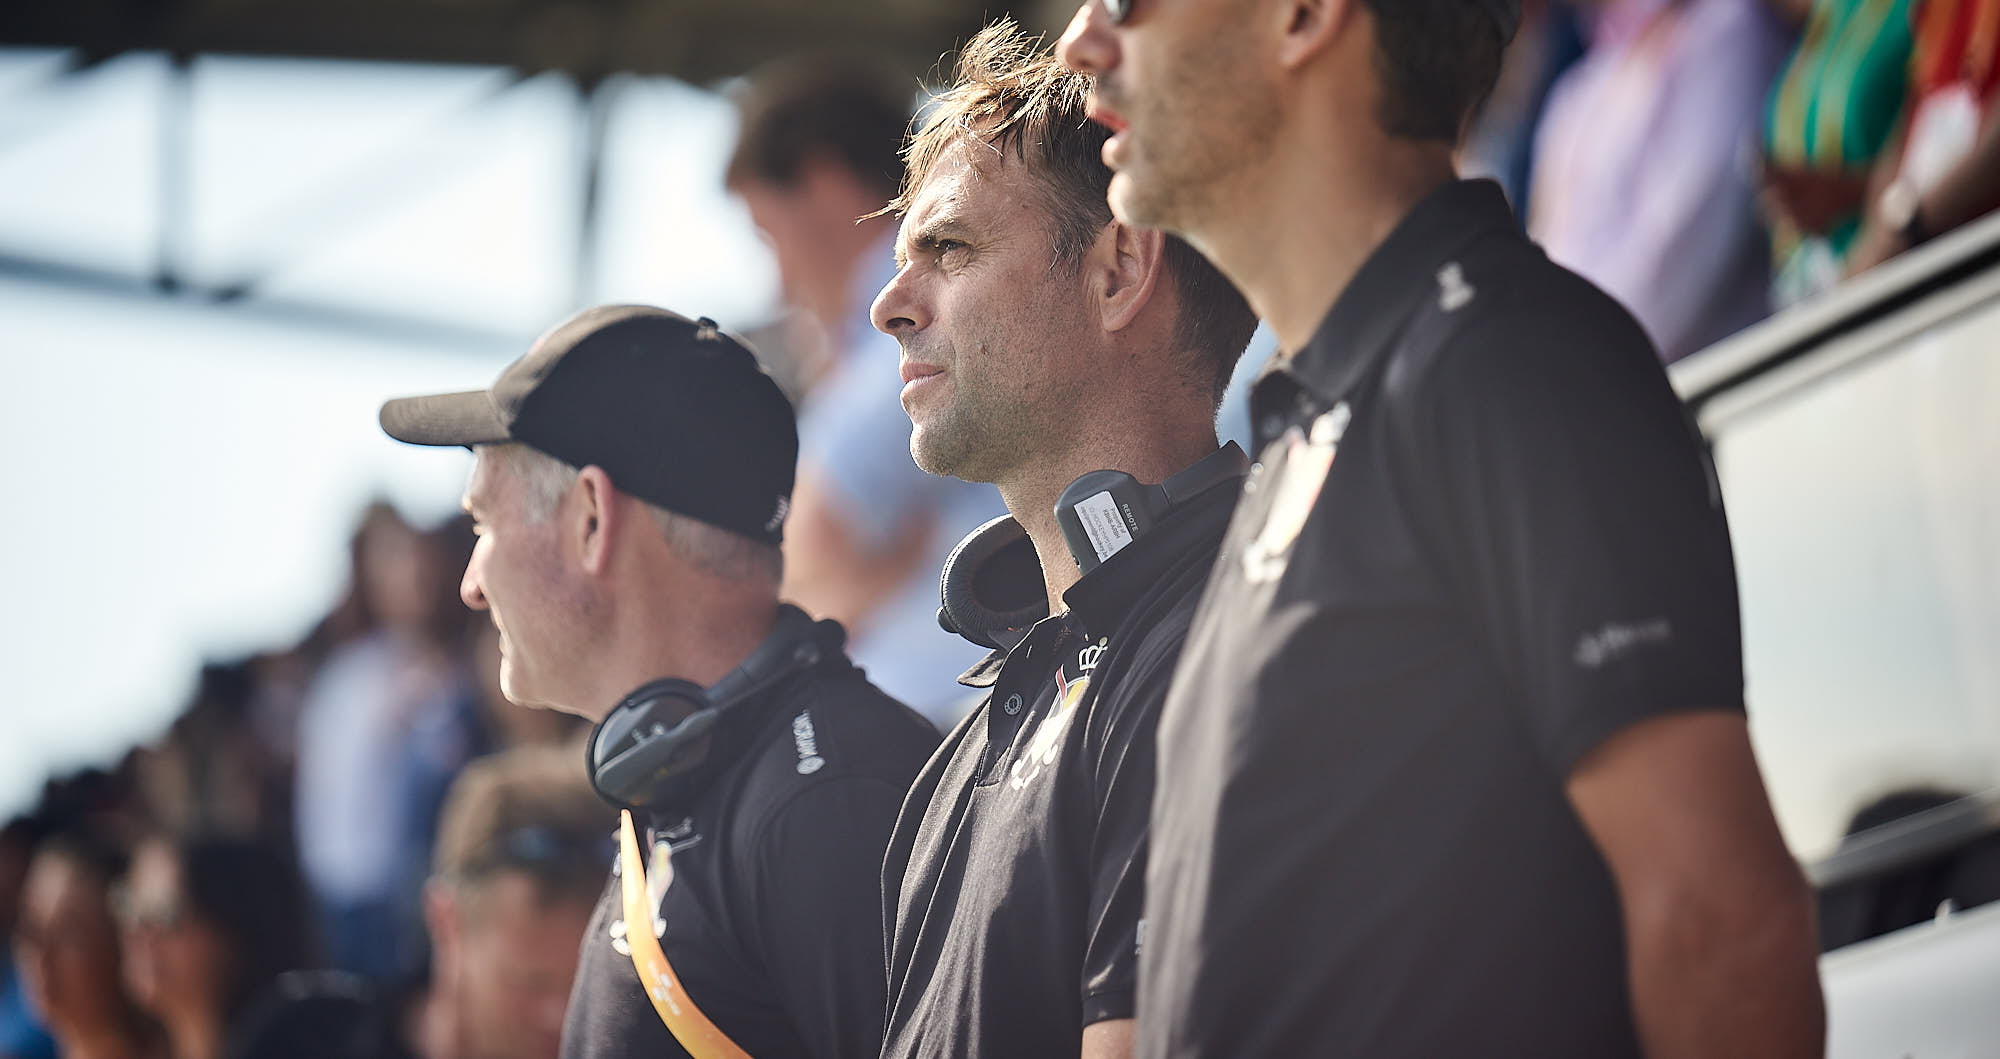 Belgian national hockey team coach during the 2019 FIH Pro League Finals in Amsterdam